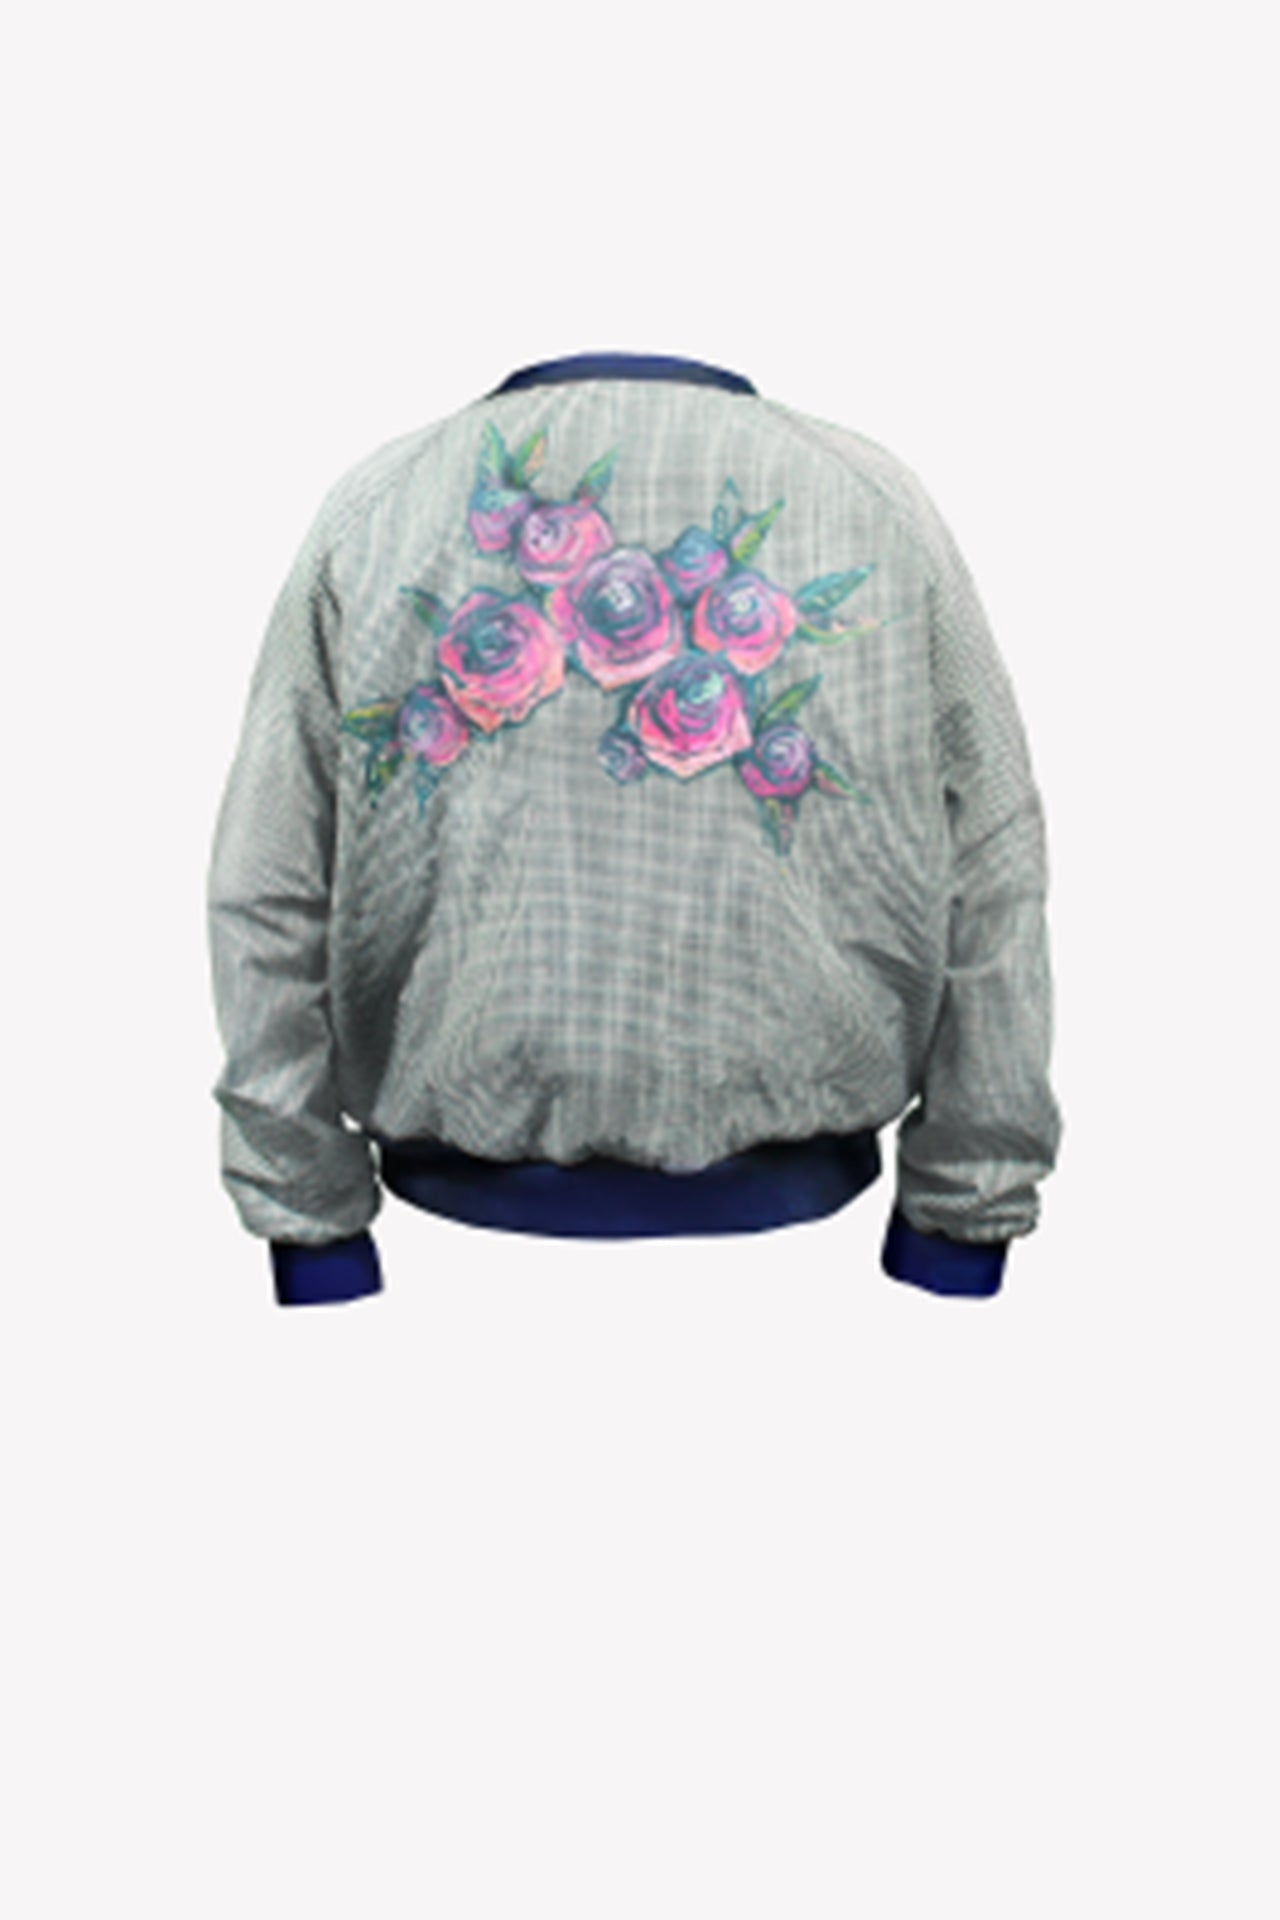 Hand painted gingham bomber jacket in navy